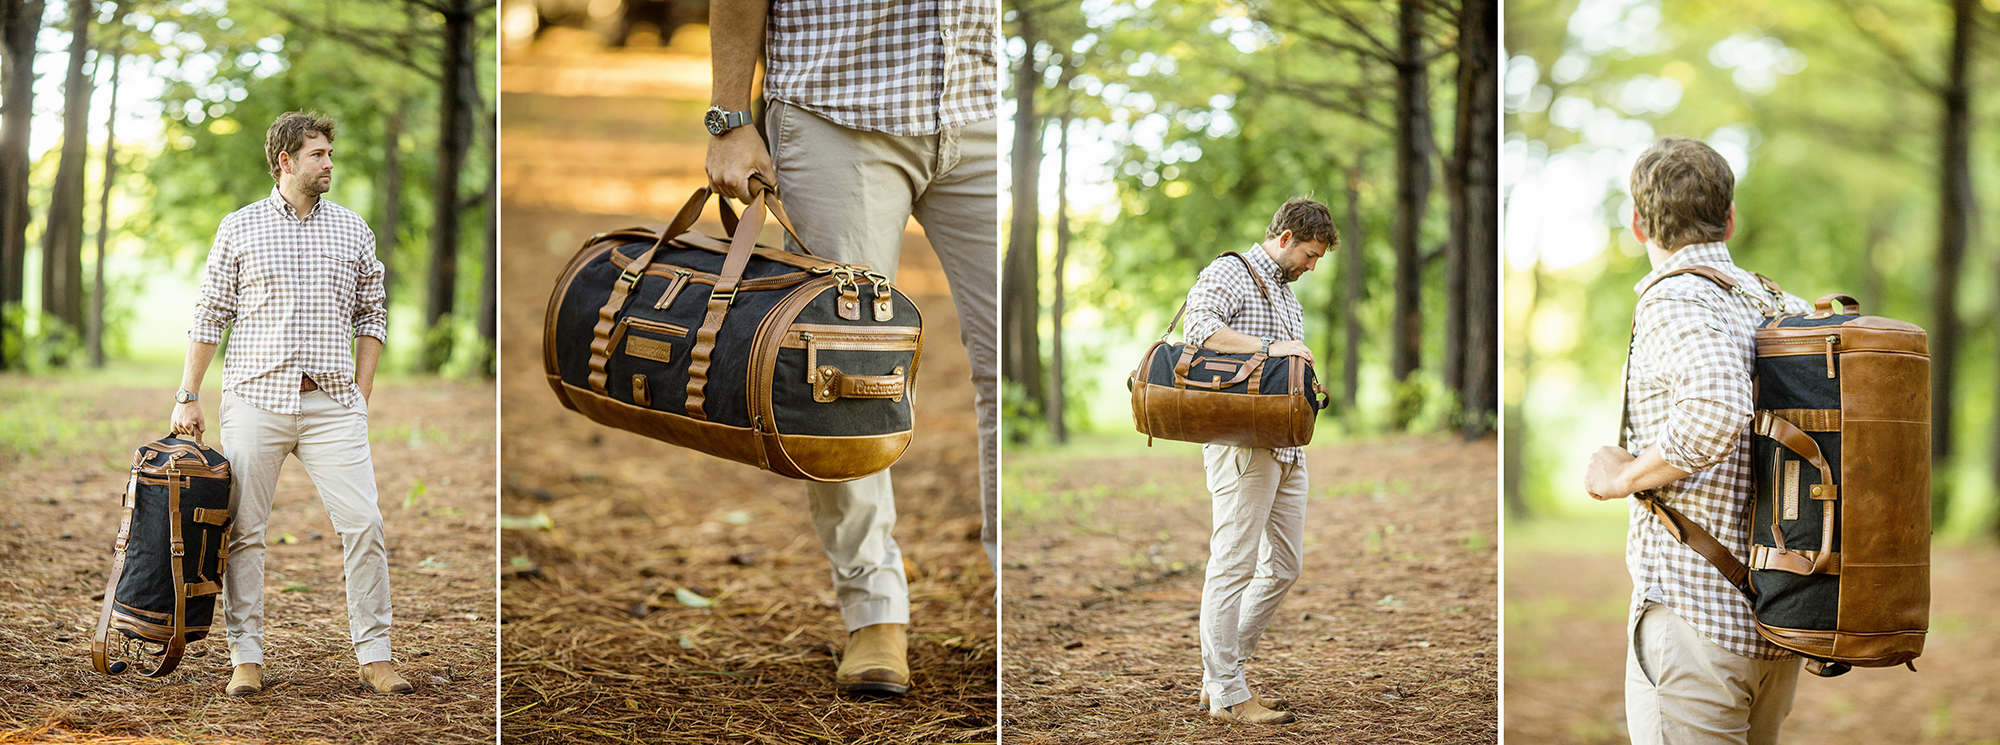 Seriously_Sabrina_Photography_Commercial_Brand_Duckworthy_Goods_July_2018_17.jpg